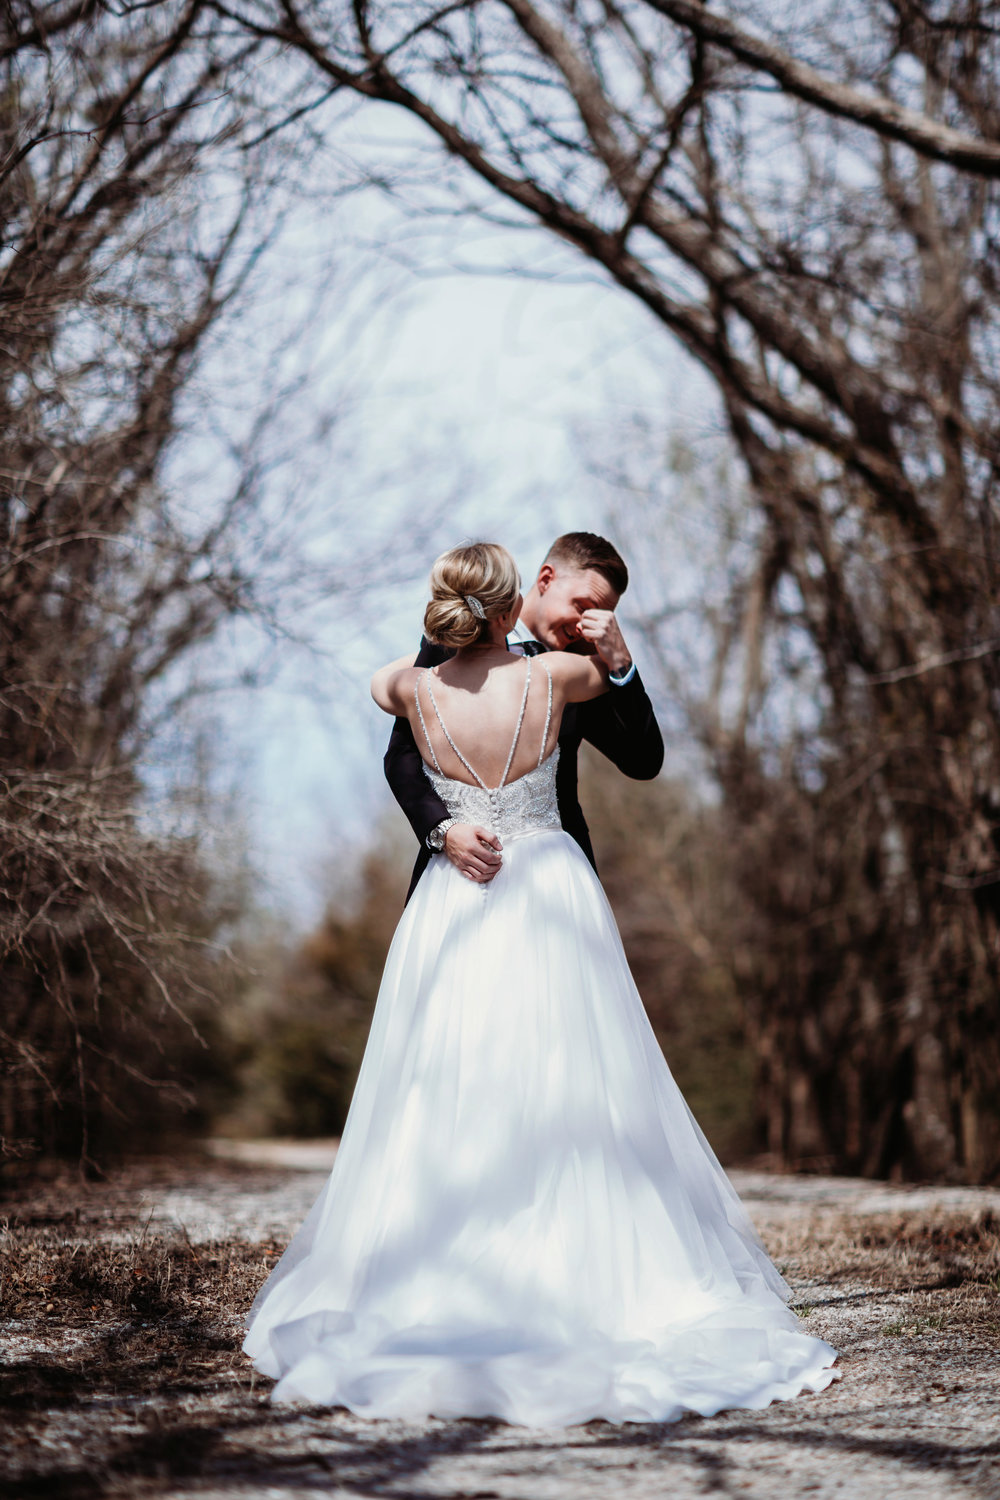 clewellphotography-7818.jpg